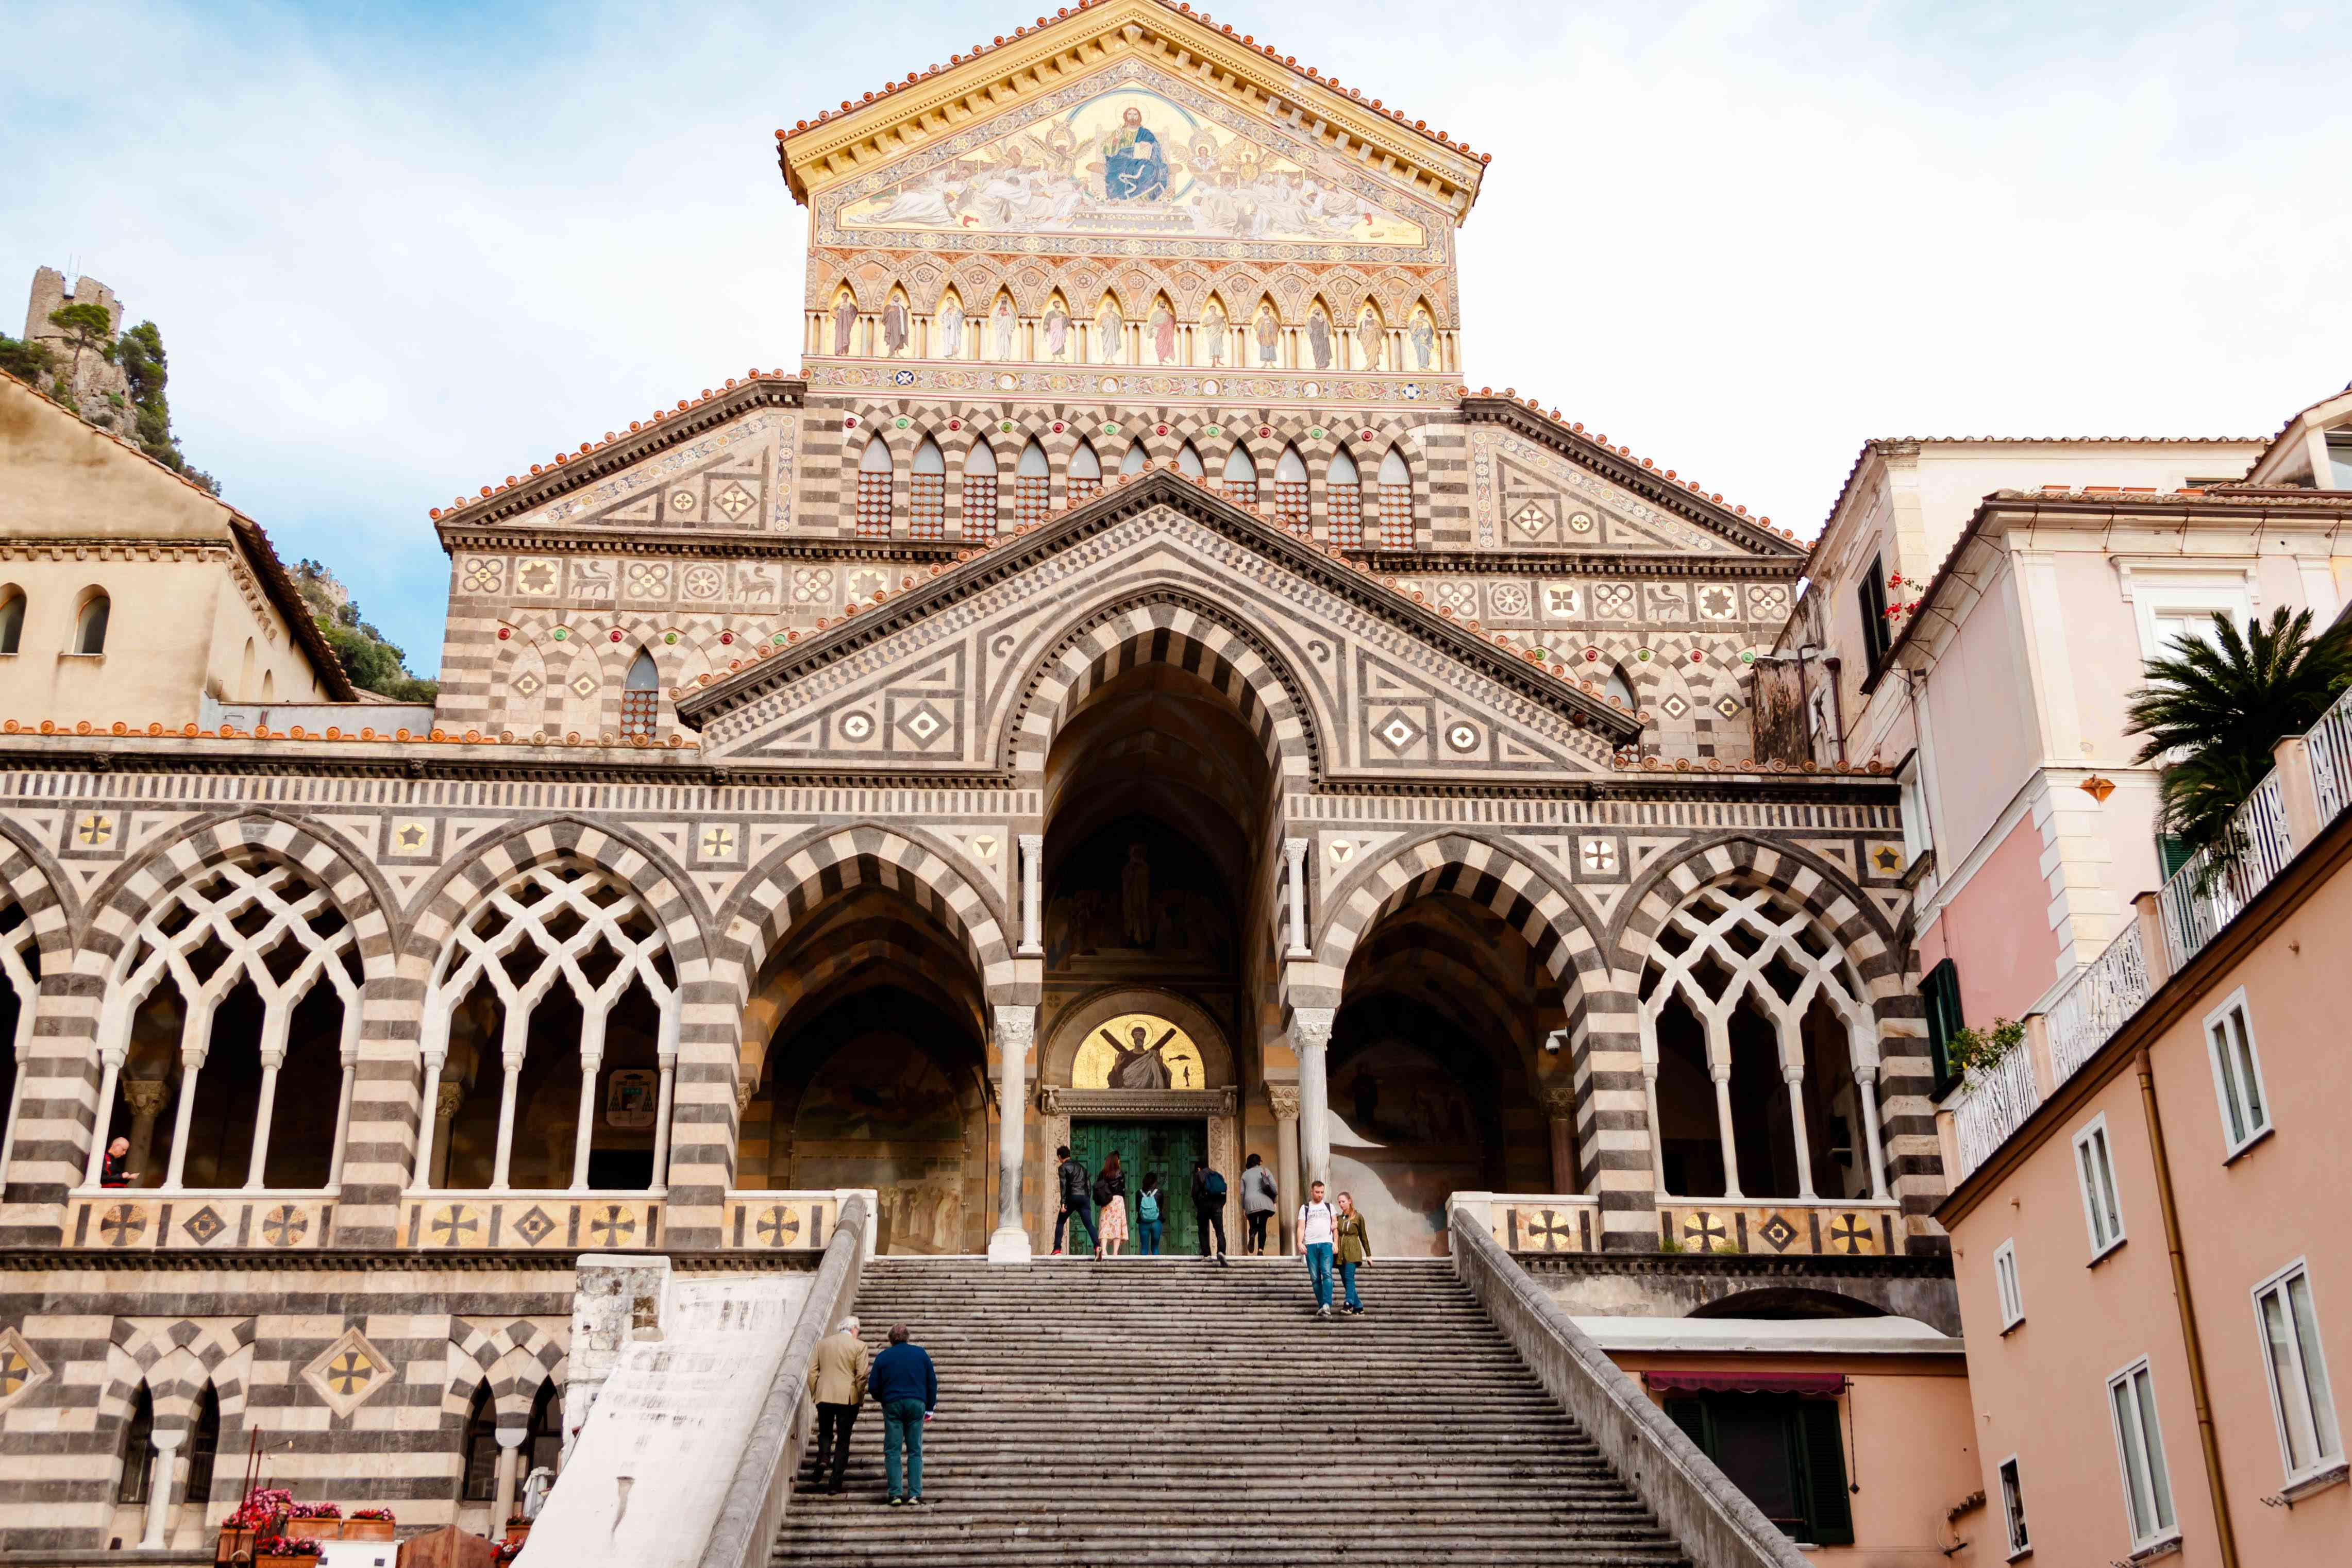 Italian Amalfi Cathedral duomo di Sant'andrea Church of St. Andrew front view. People watch the temple from below on the steps and are going to ascend